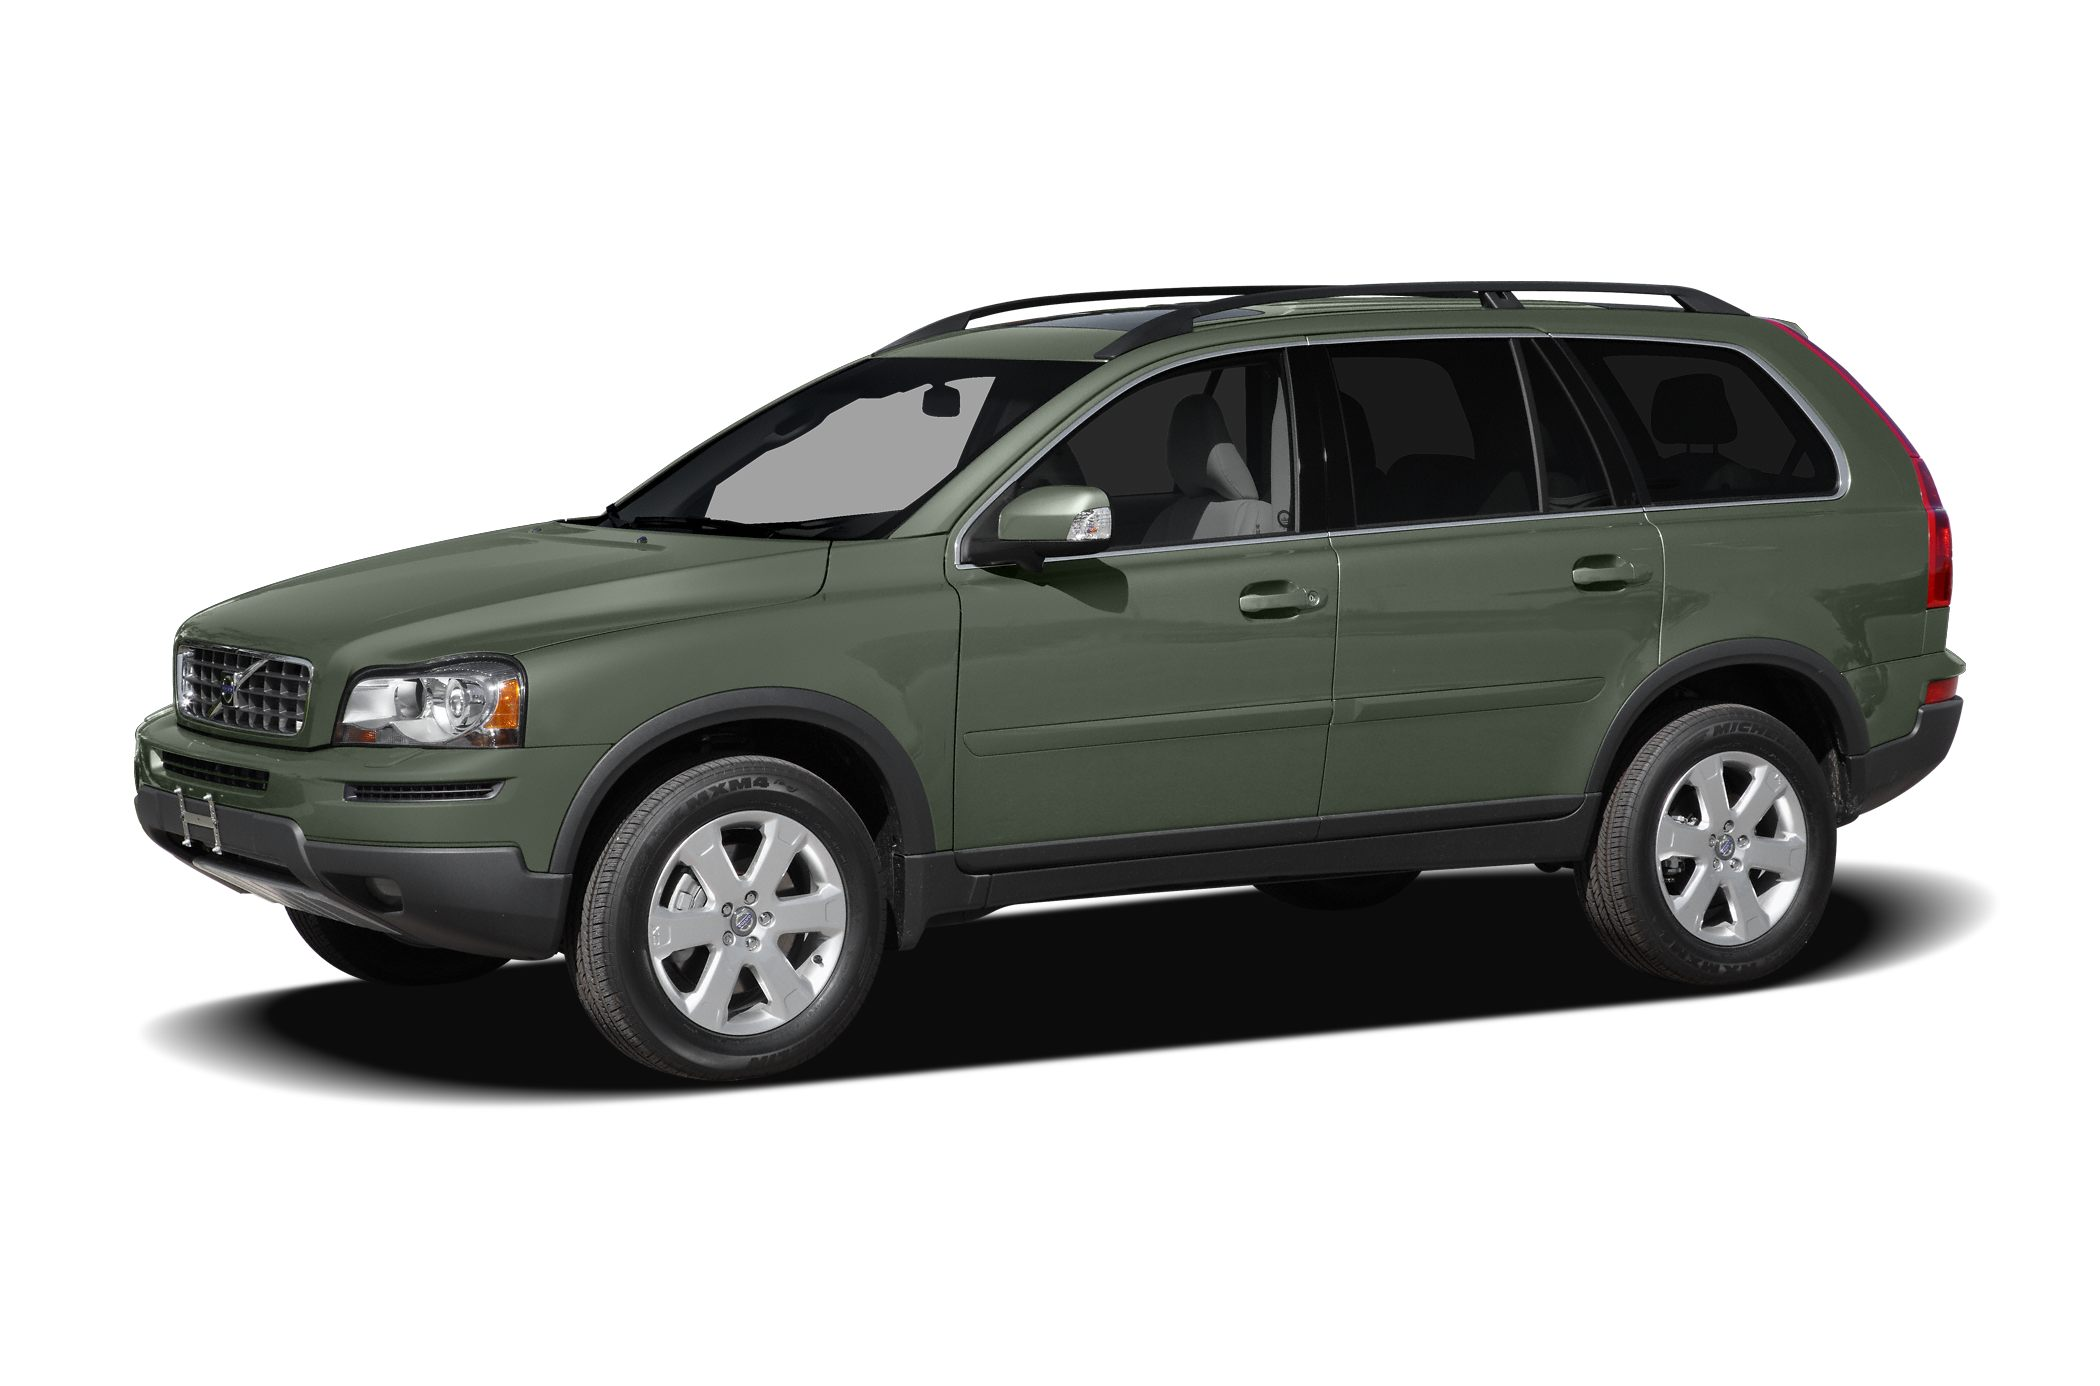 2009 Volvo XC90 32 Dont bother seeking any other SUV Move quickly So clean it looks like it